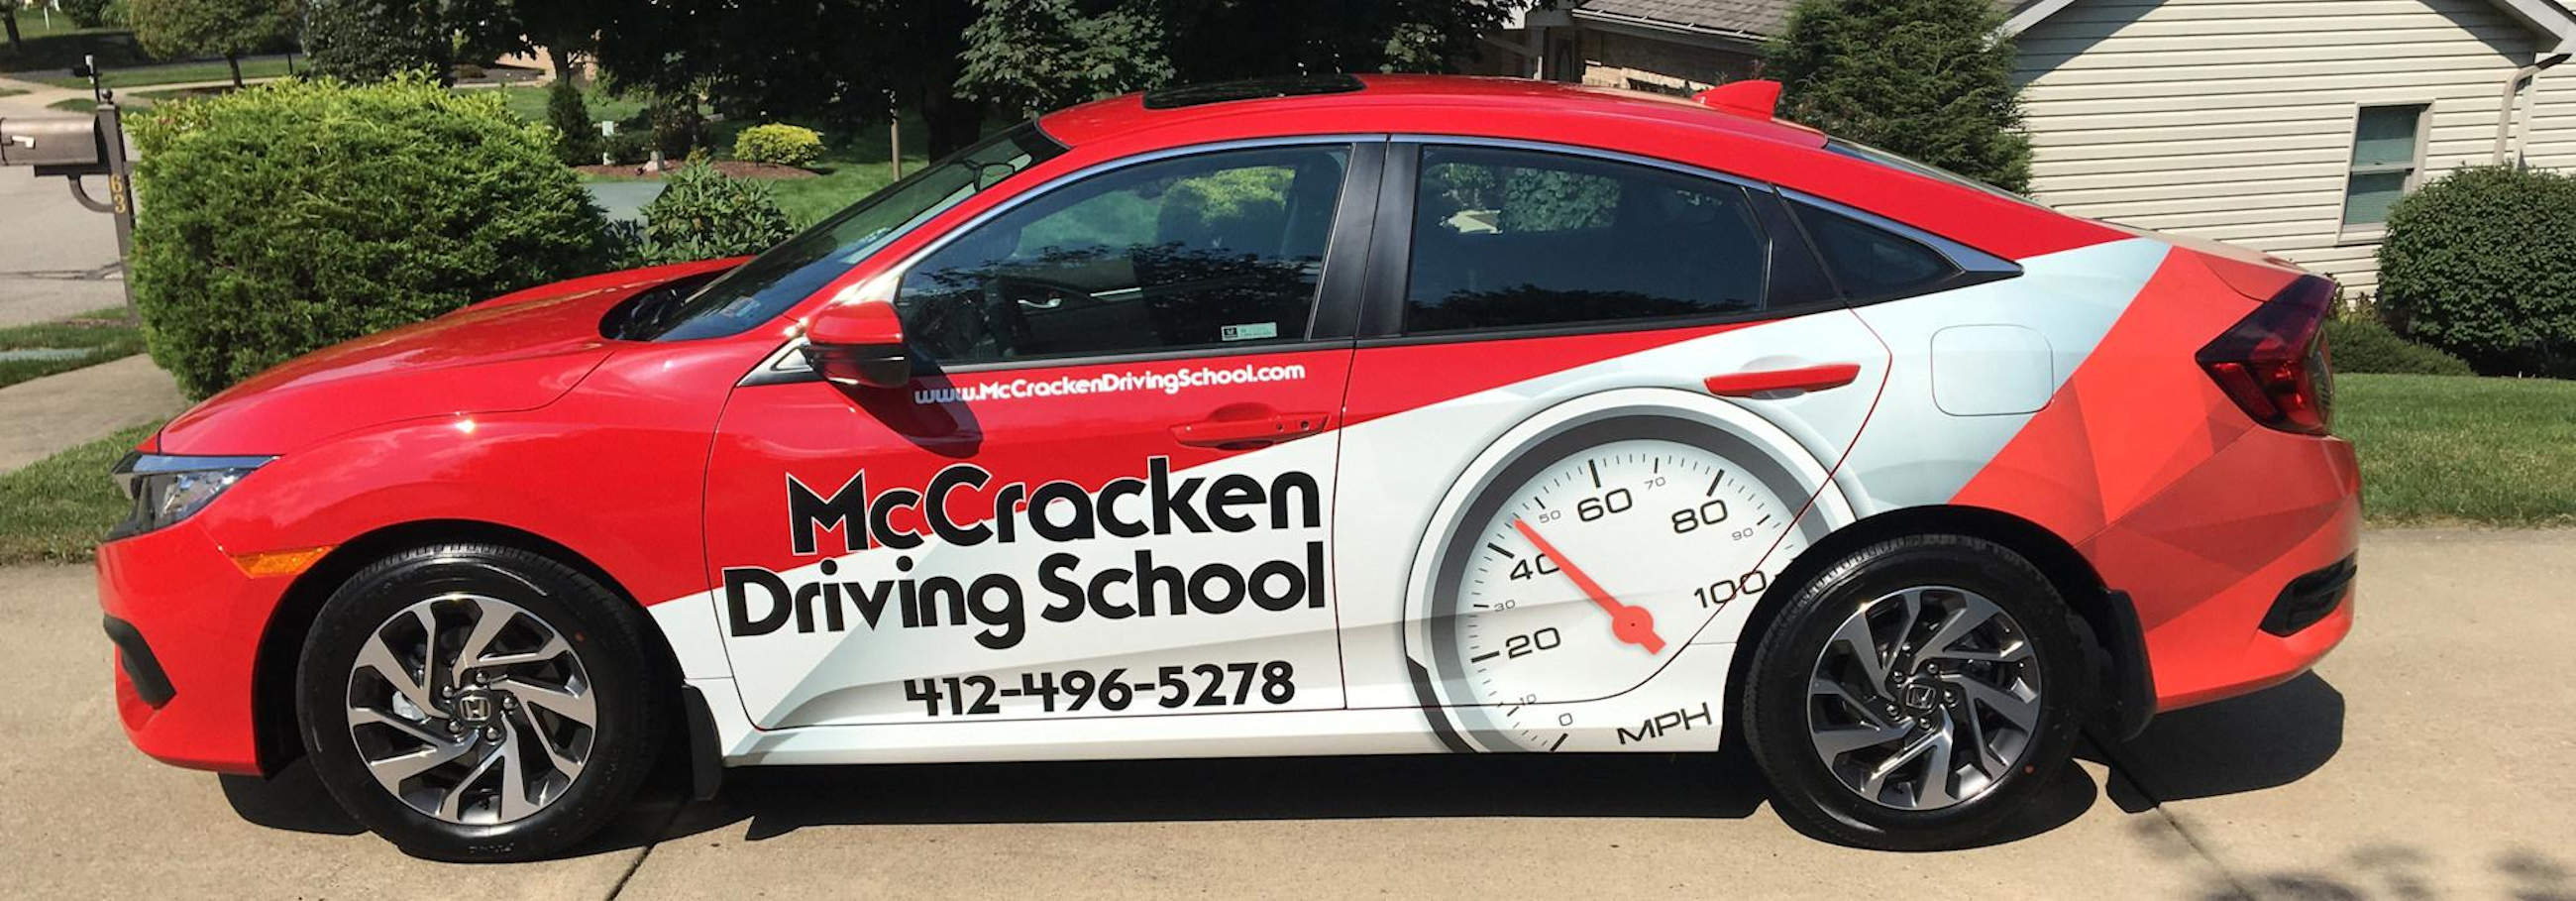 McCracken Driving School